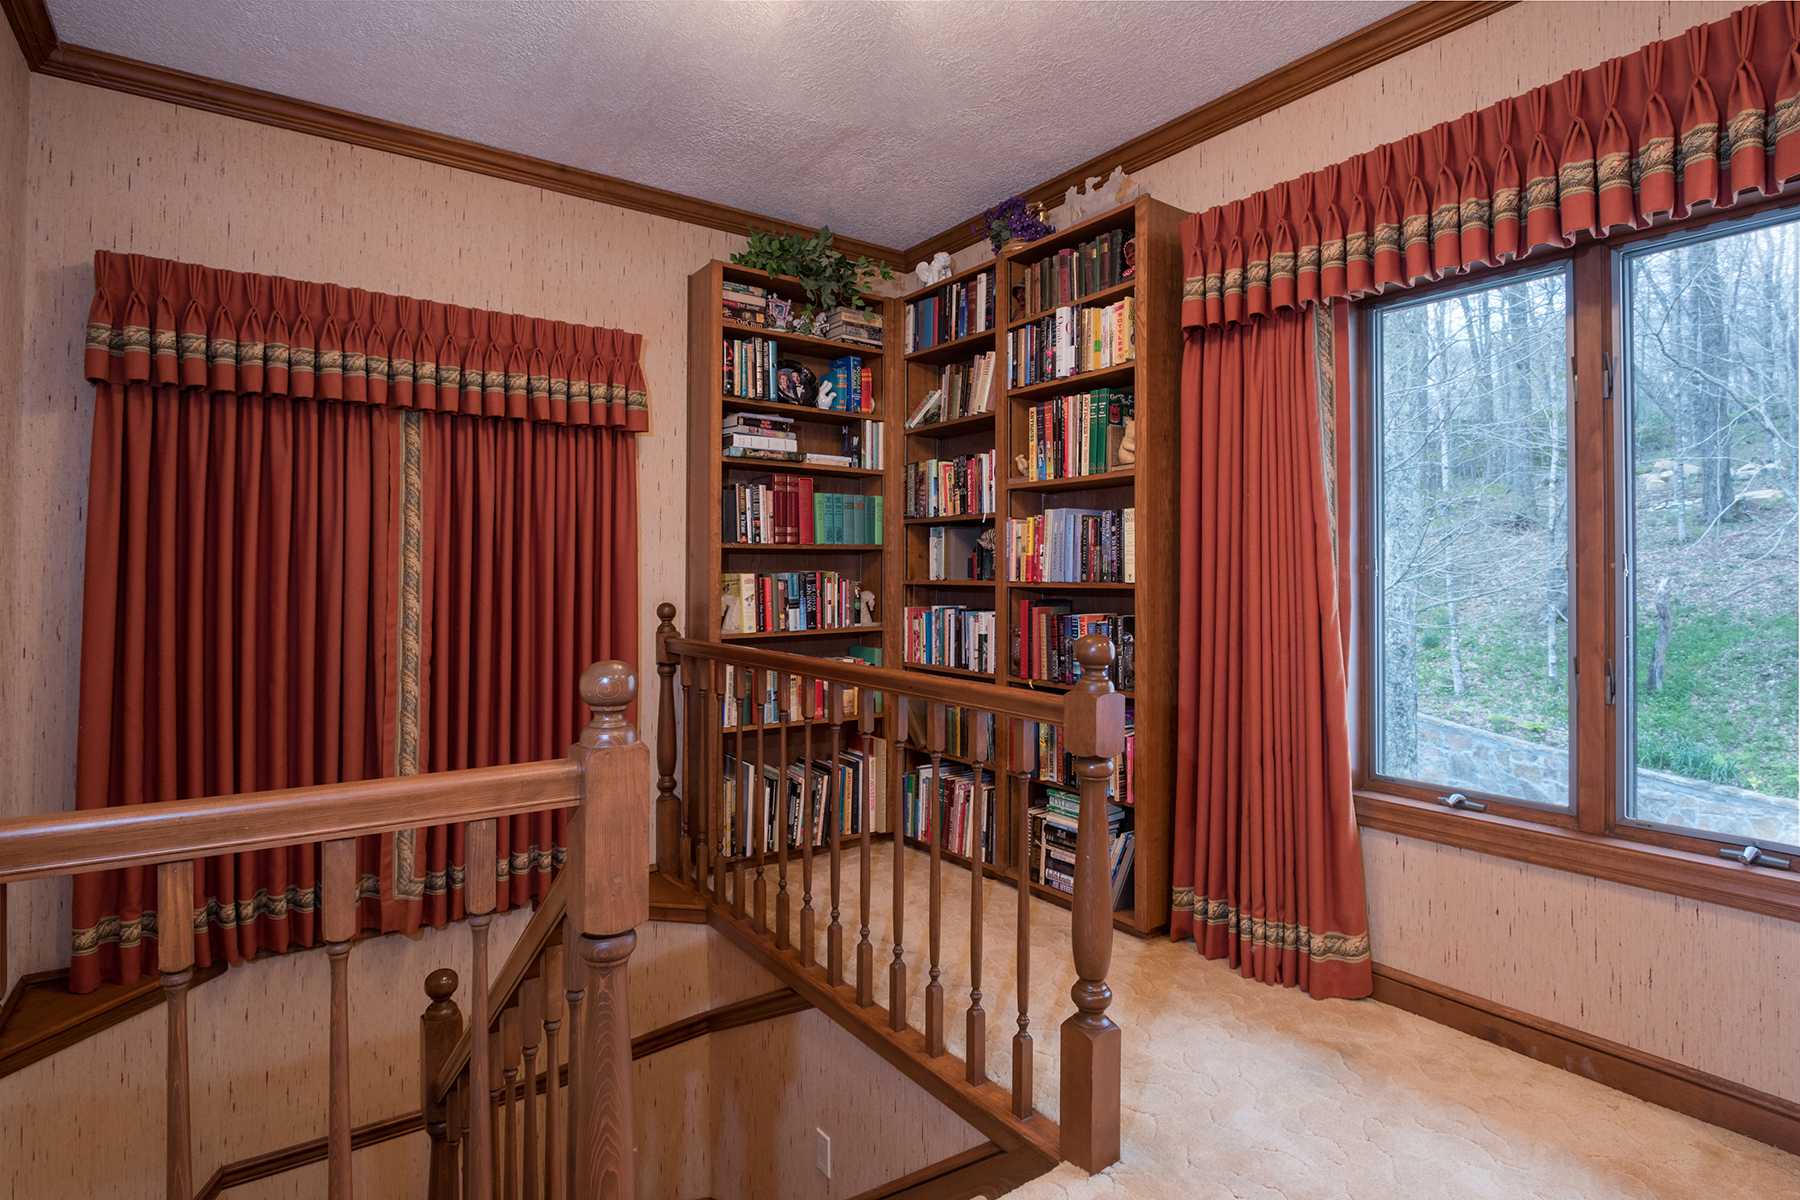 Additional photo for property listing at LINVILLE RIDGE 213  Ridge Dr 2,  Linville, North Carolina 28646 United States